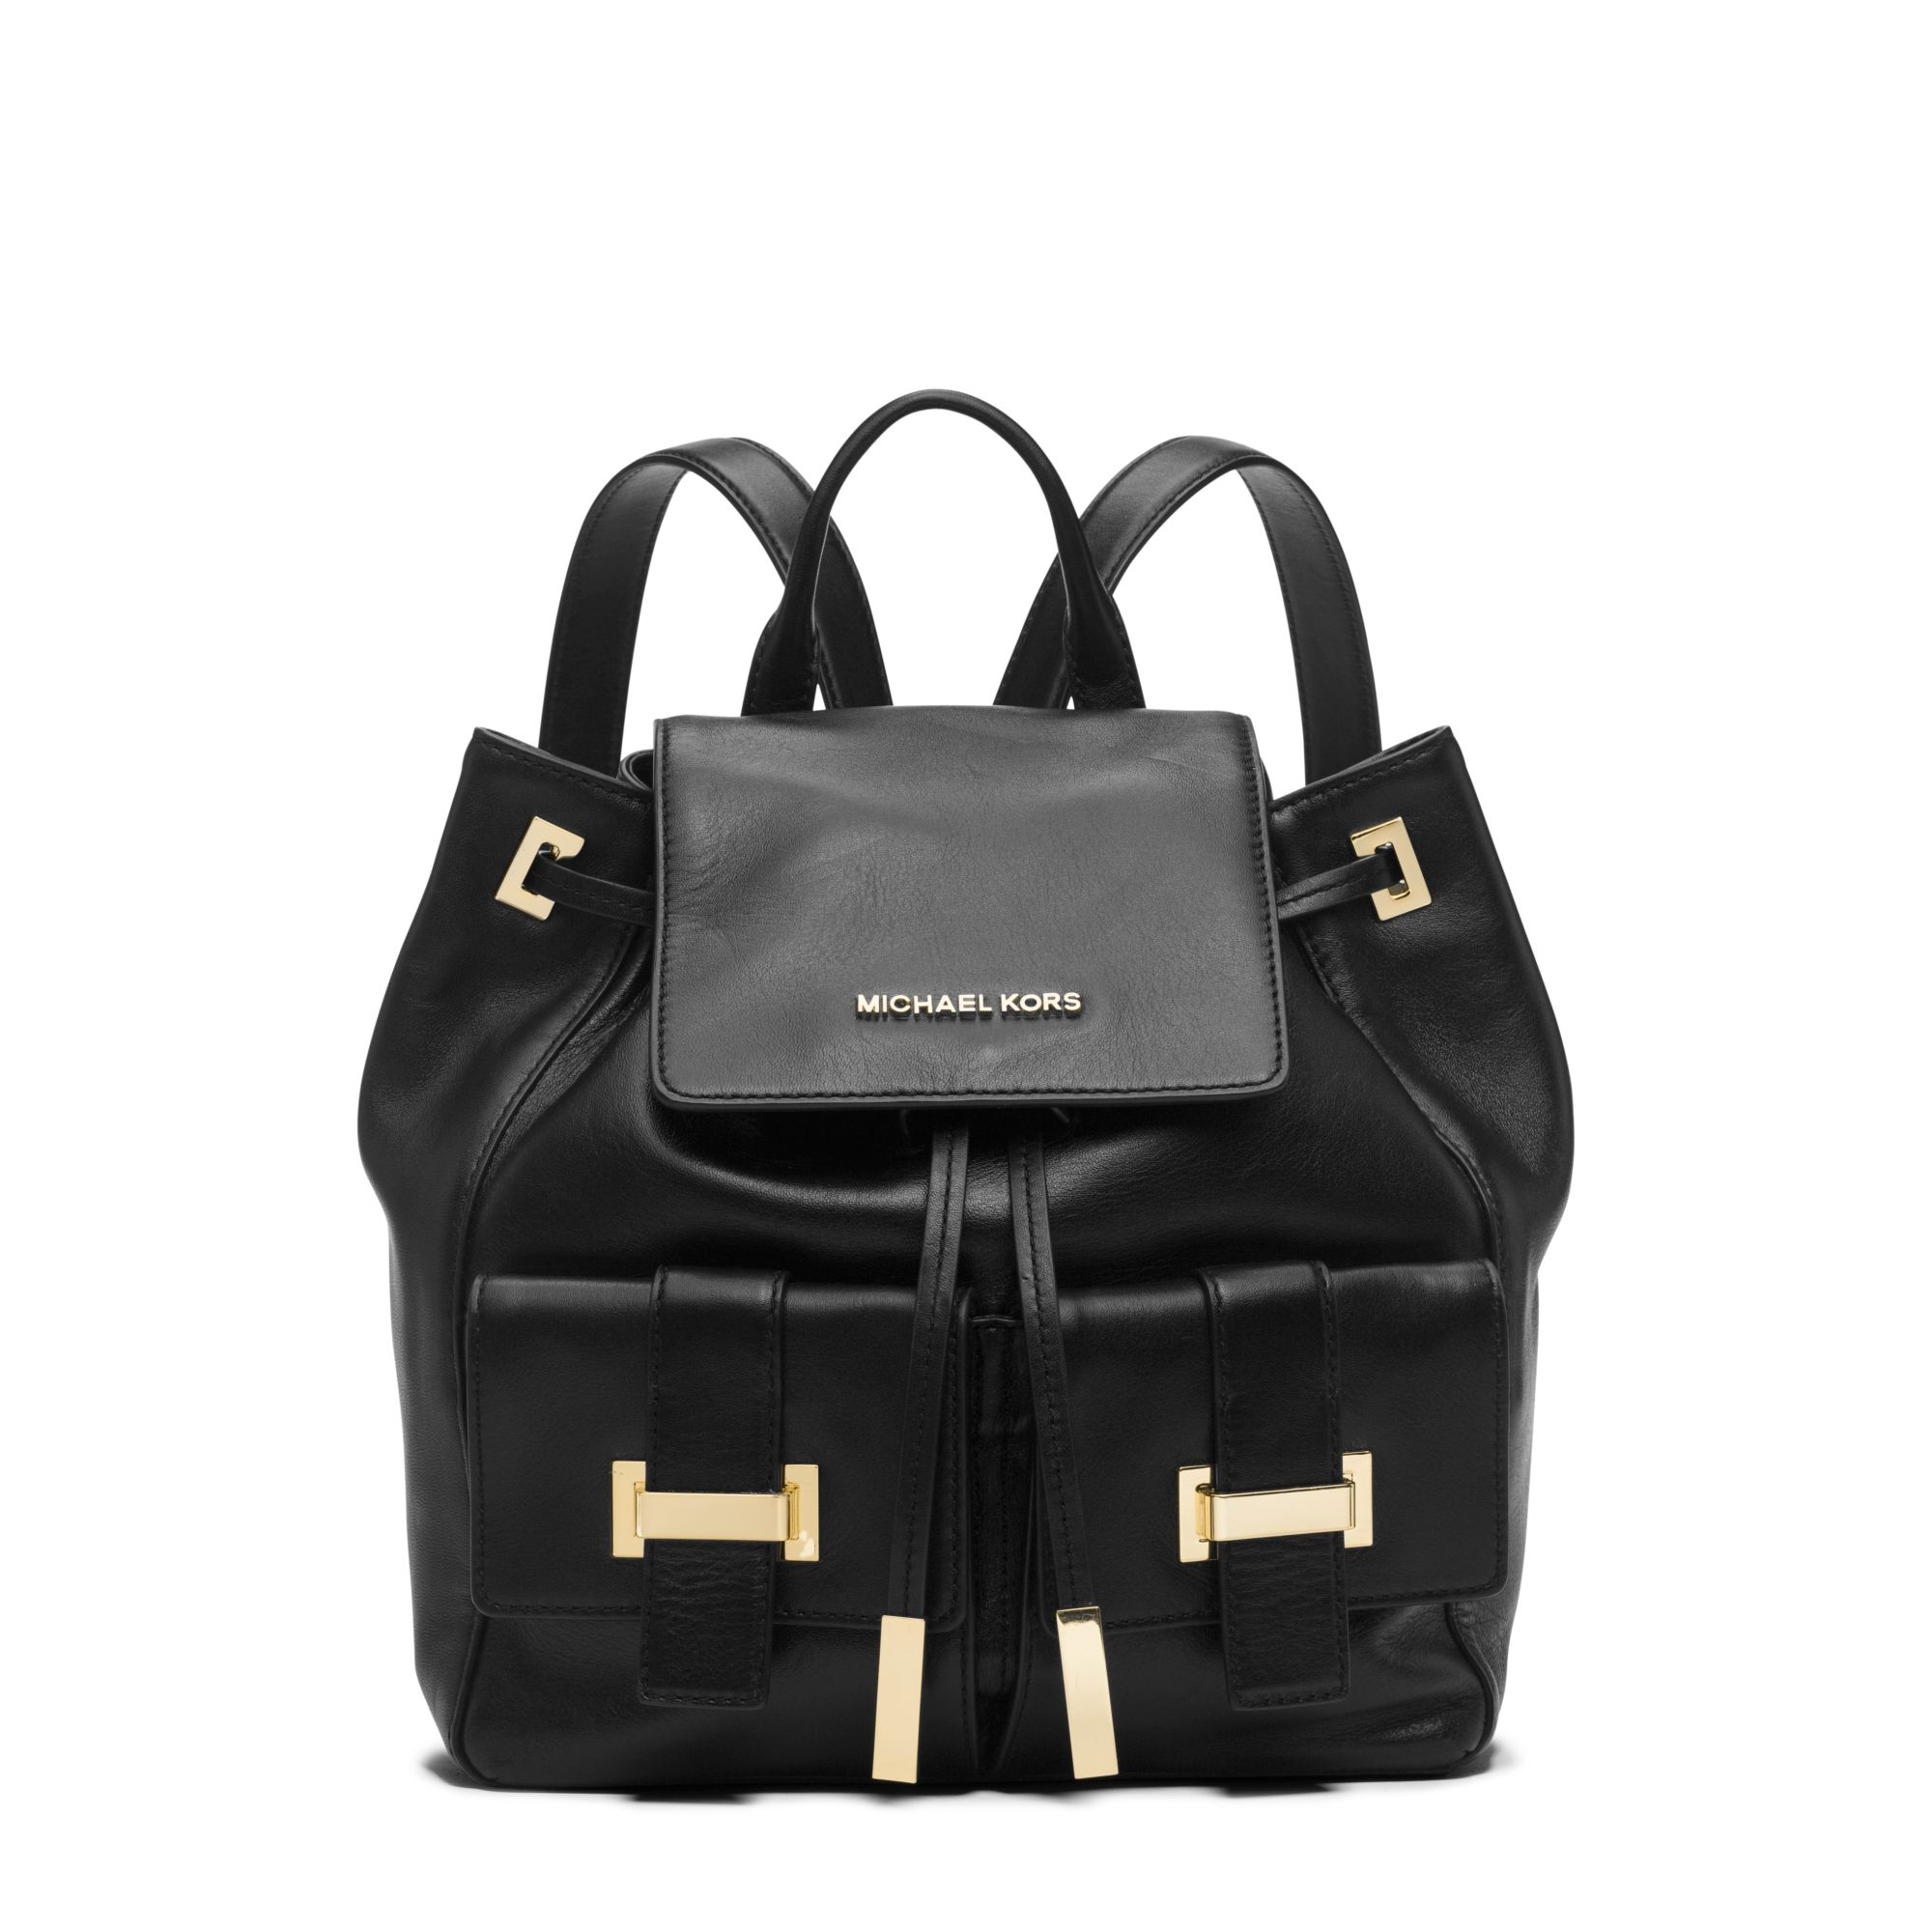 7b1f2a74d202 Lyst - Michael Kors Marly Drawstring Leather Backpack in Black